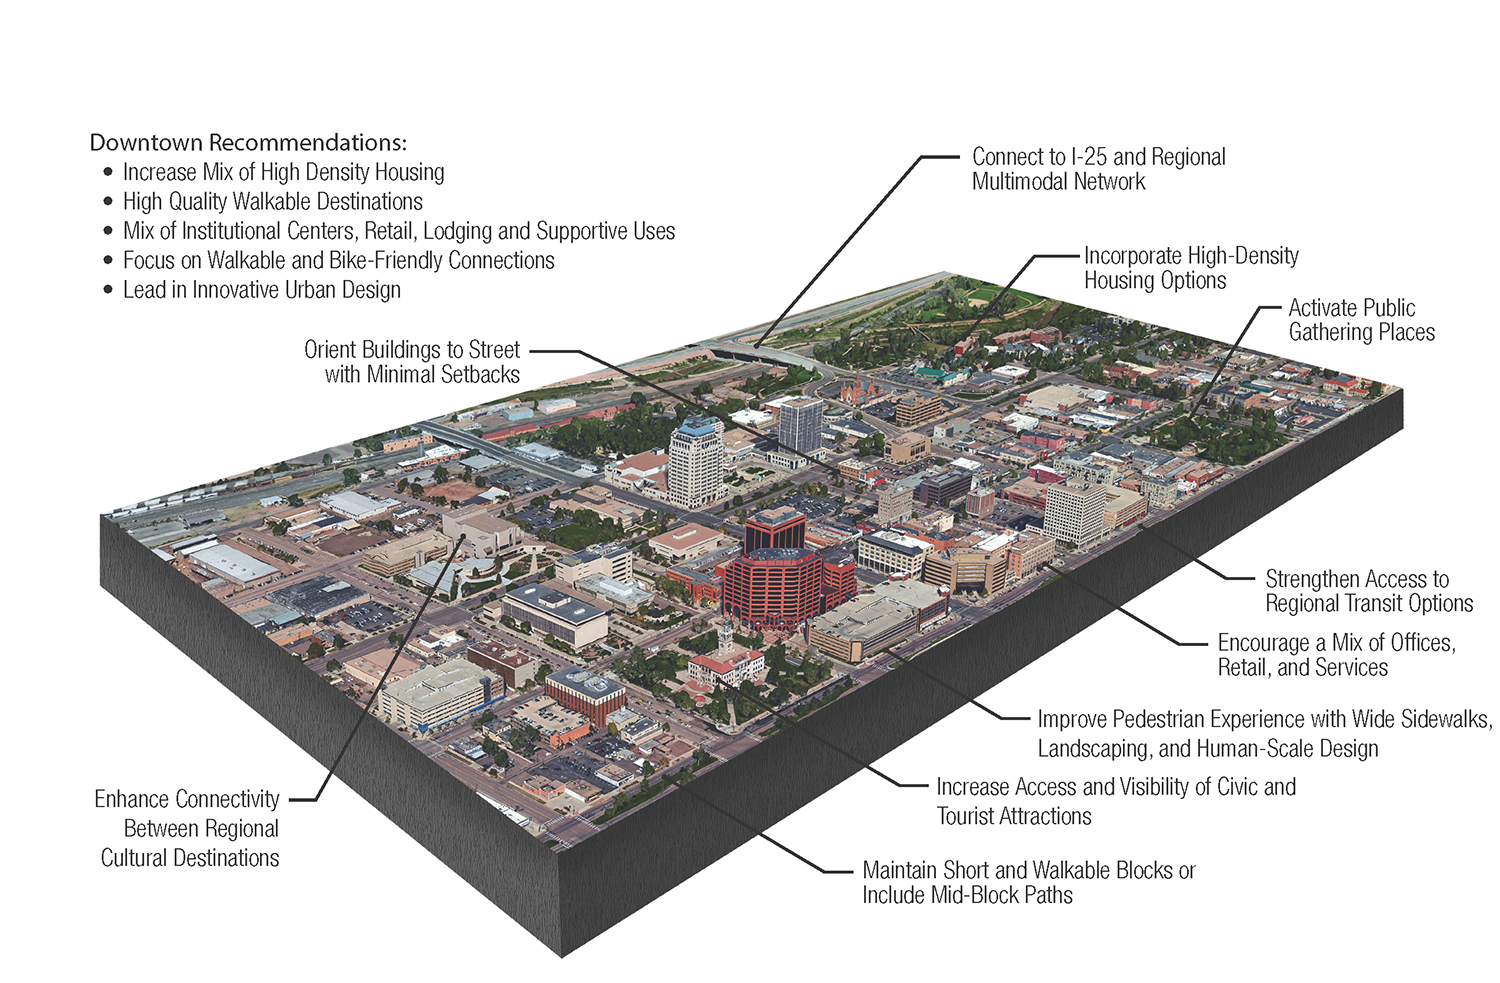 map showing downtown recommendations